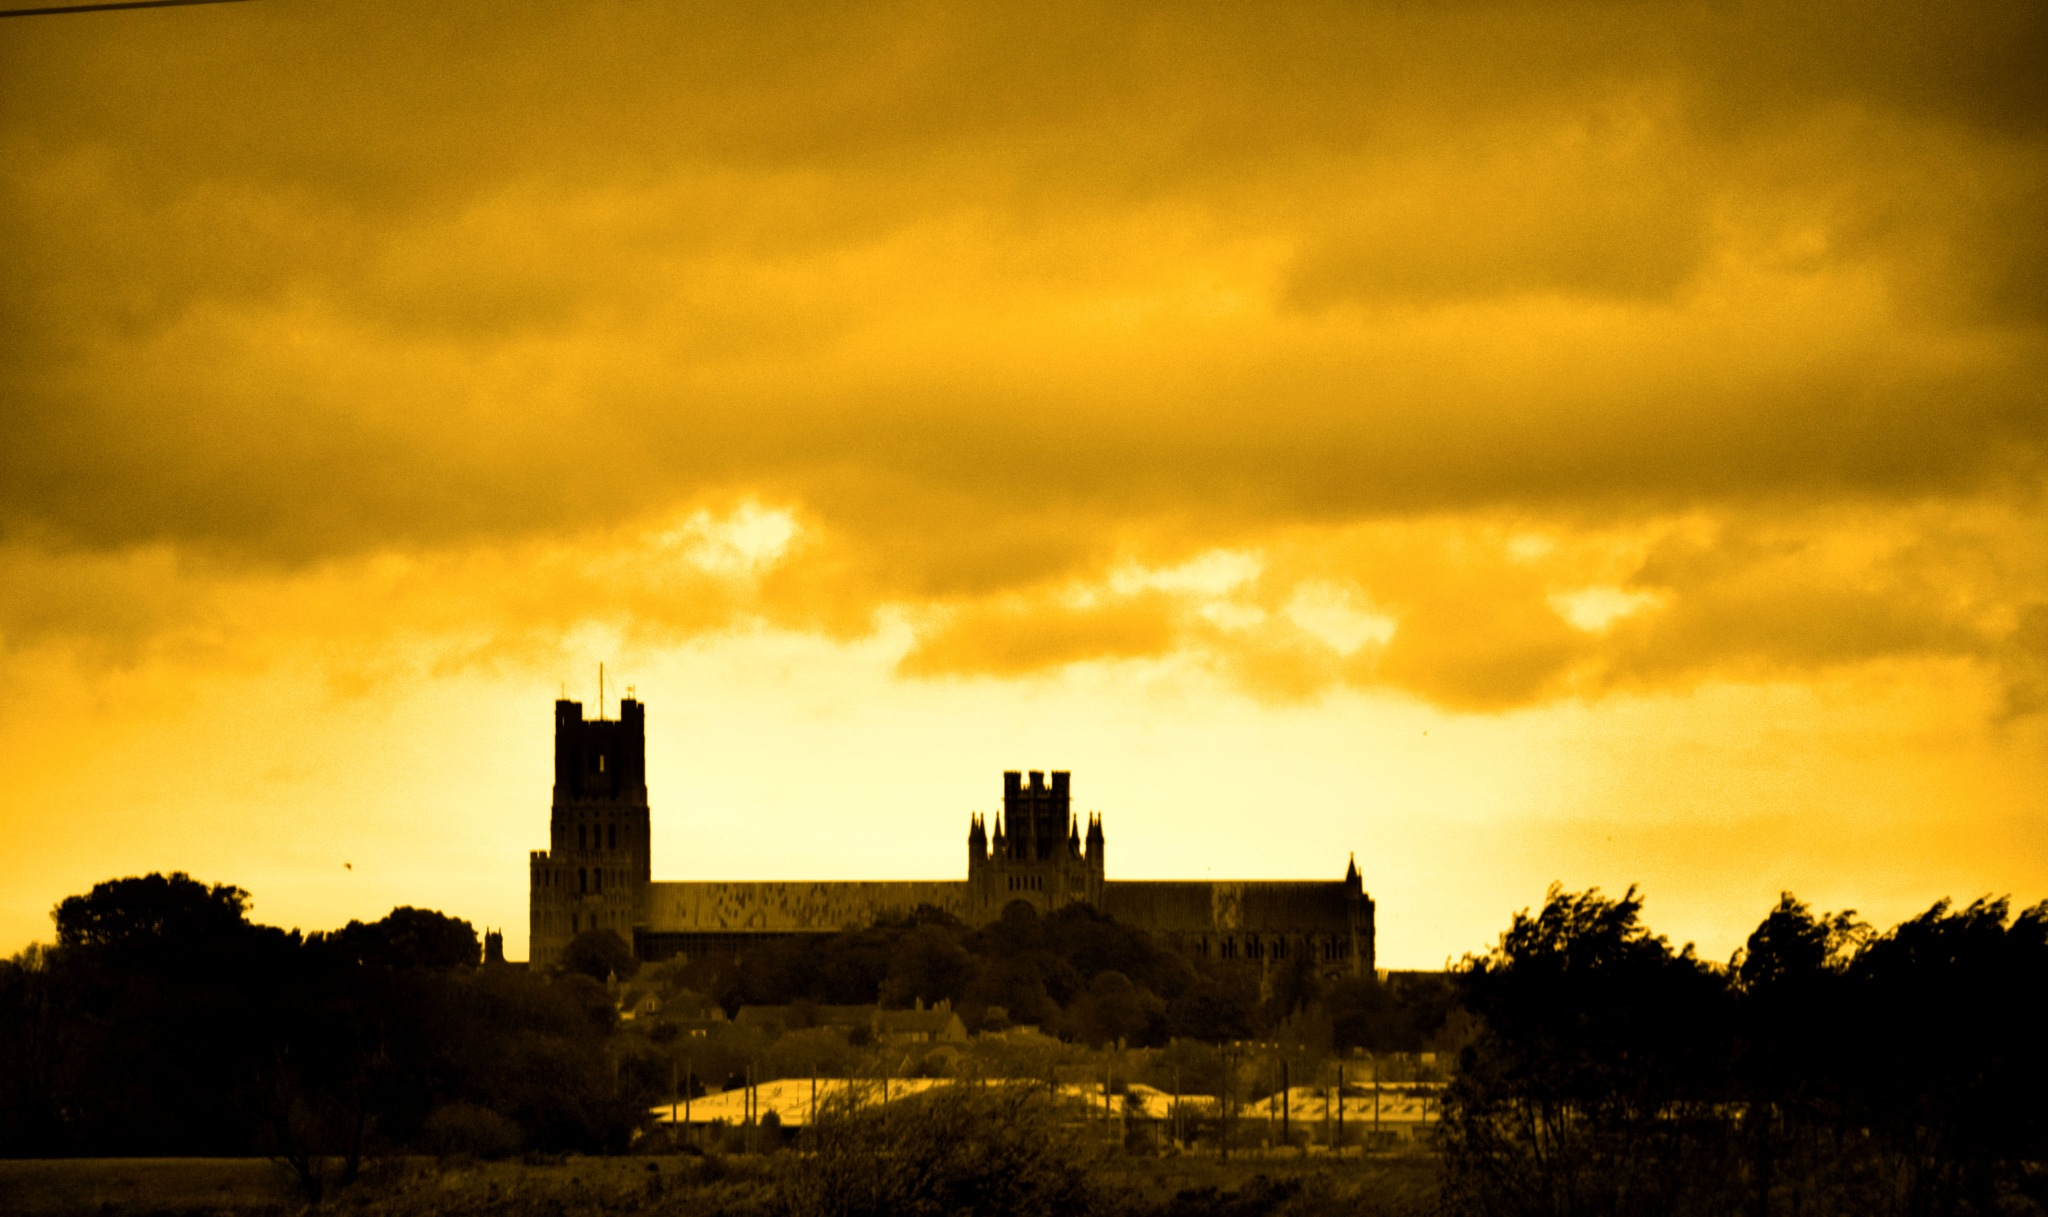 Ely cAthEdrAl by Ian Alastair Trenor Photography